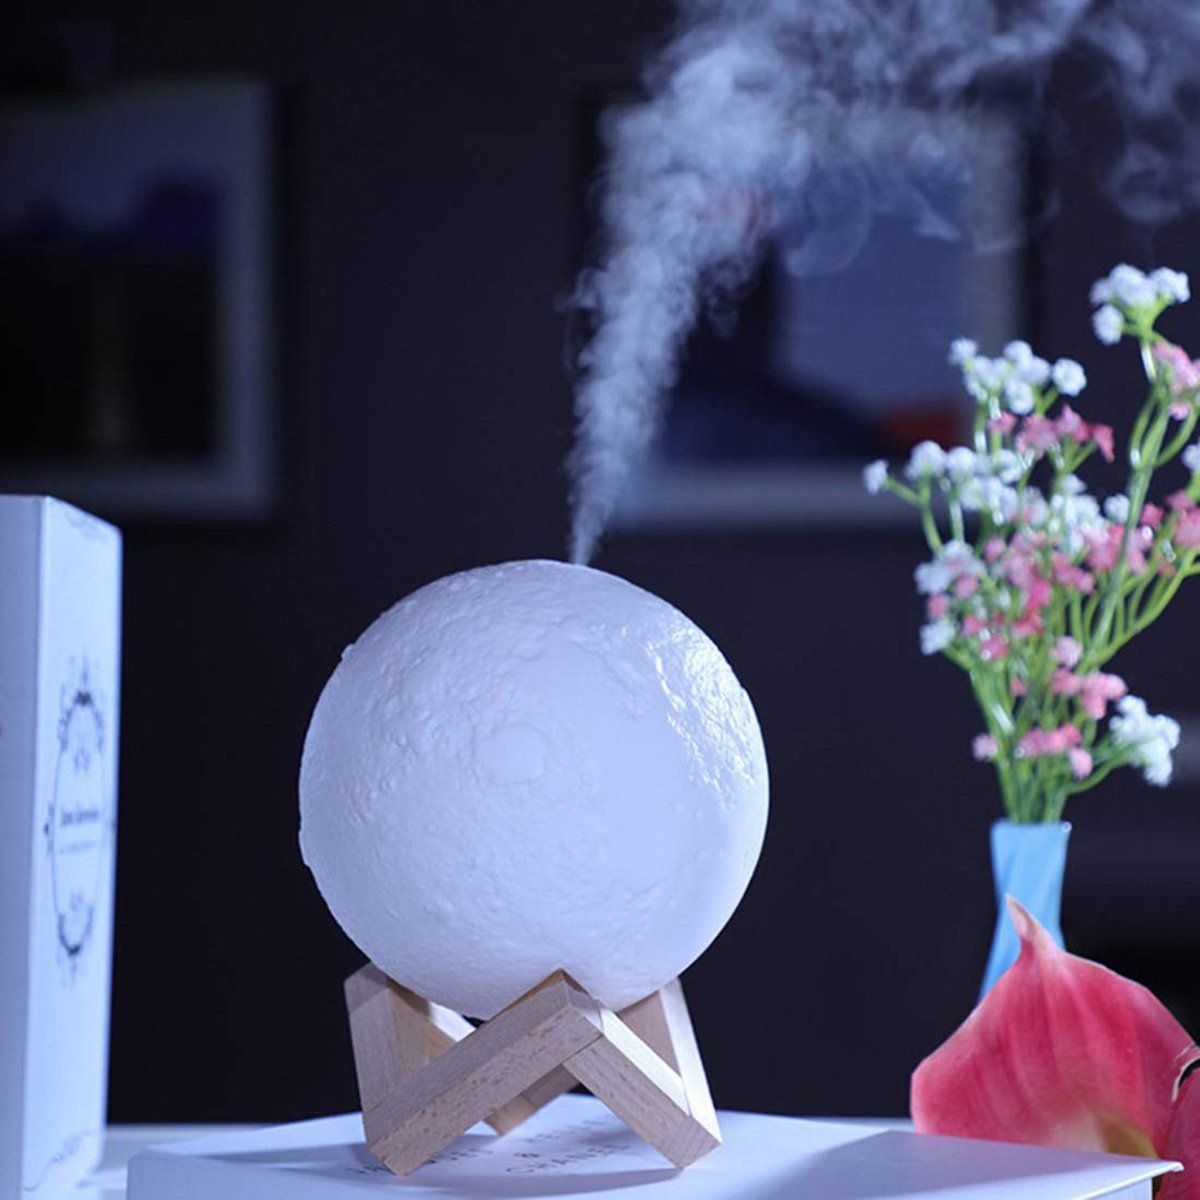 Air Humidifier,Cool Mist Humidif,880ML Ultrasonic Moon Air Humidifier Aroma Essential Oil Diffuser with LED Night Lamp USB Mist Maker